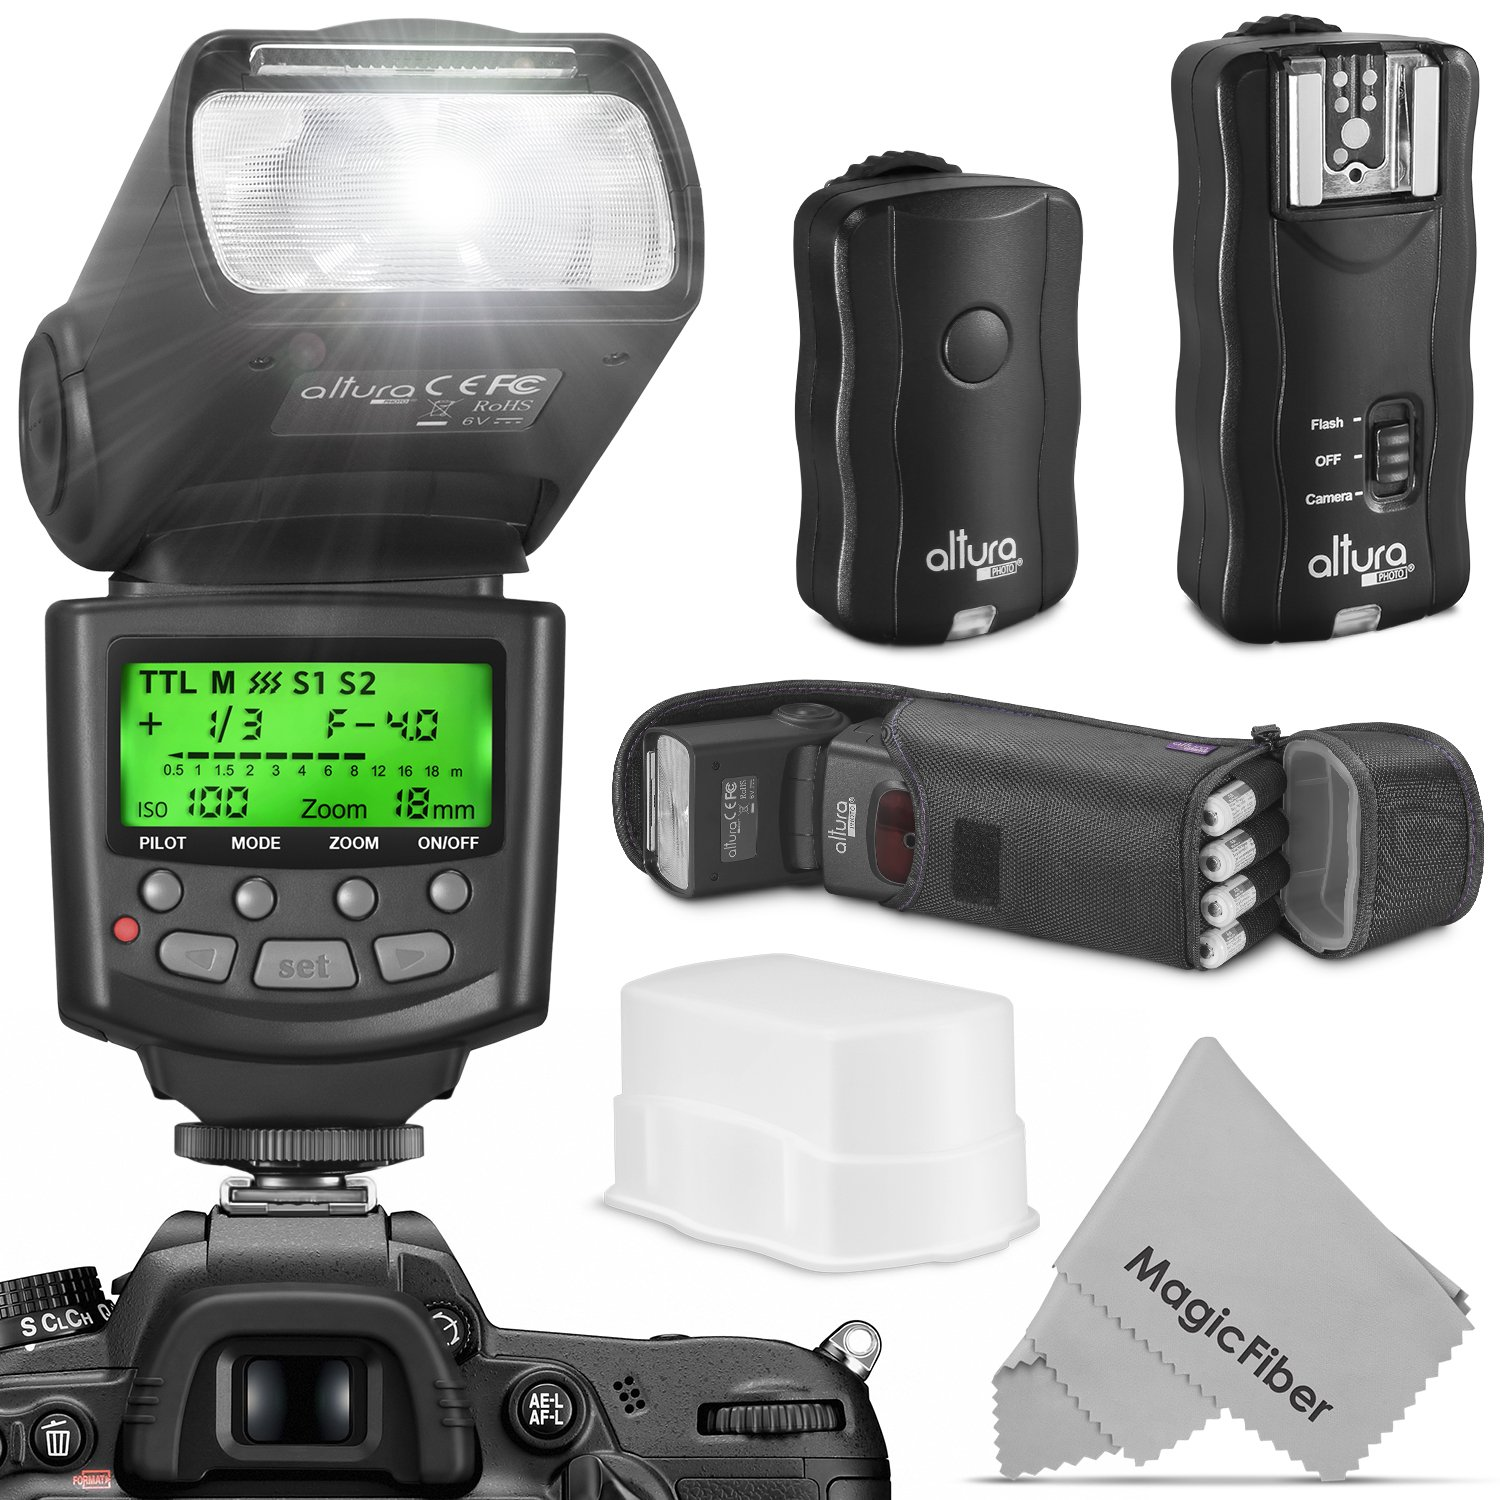 Altura Photo Professional Flash Kit for NIKON DSLR - Includes: I-TTL Flash (AP-N1001), Wireless Flash Trigger Set and Accessories by Altura Photo